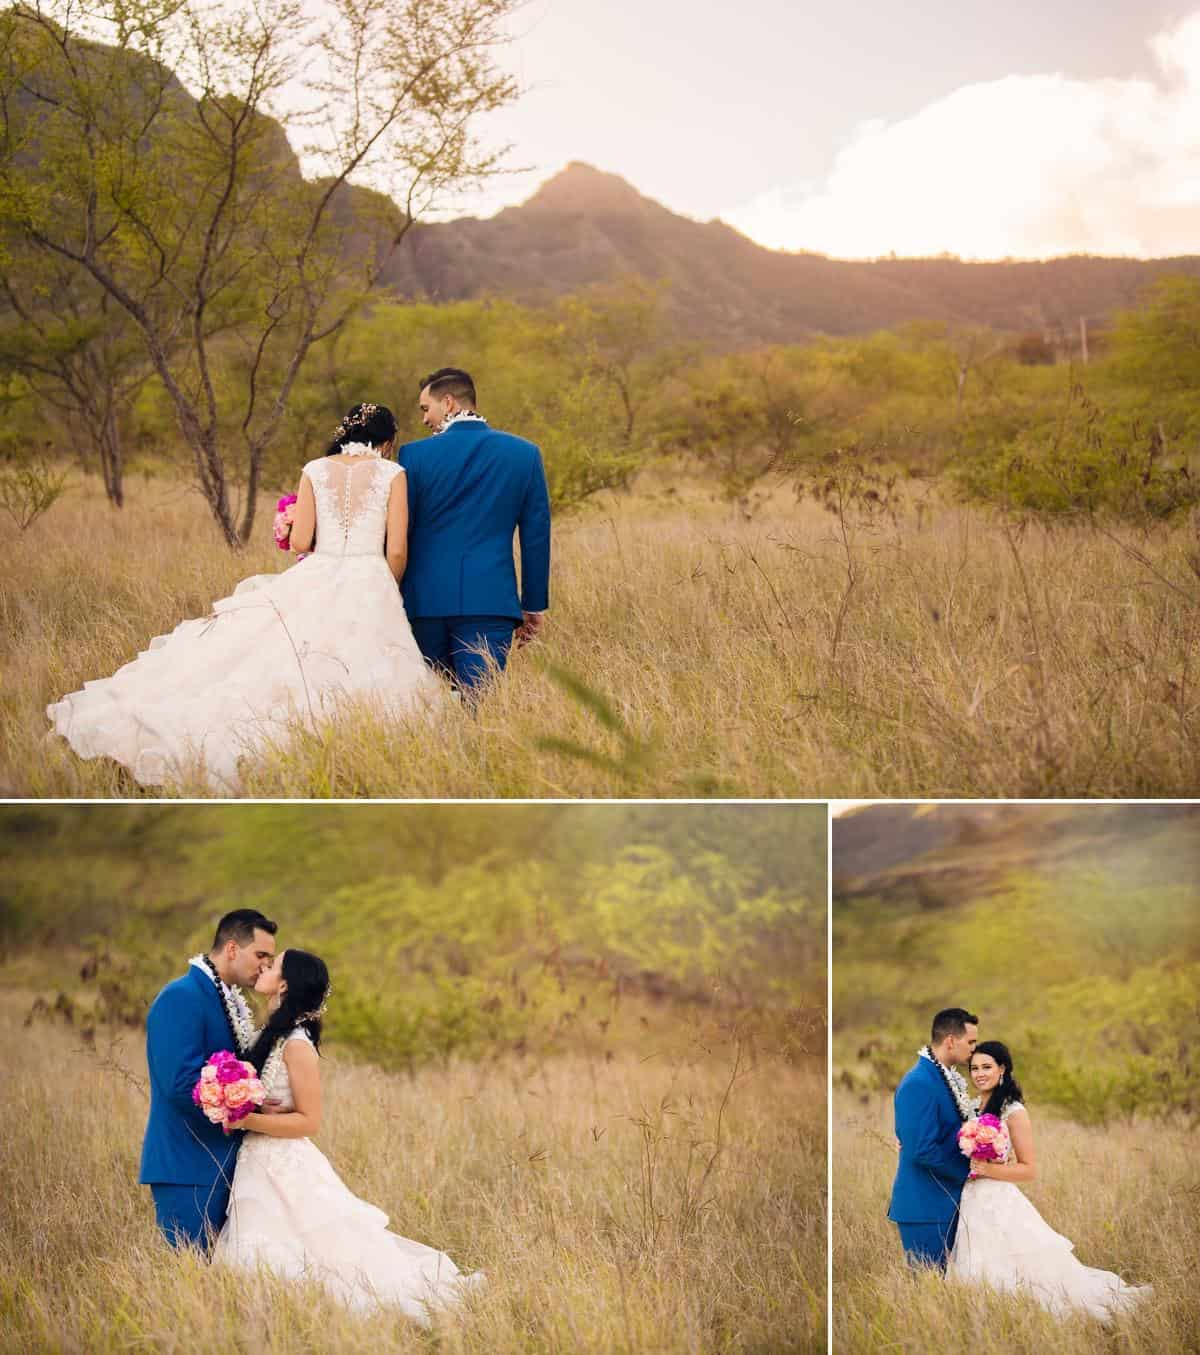 Bride and groom walking through tall grass Makua Hawaii Destination wedding photographer www.benandhopeweddings.com.au